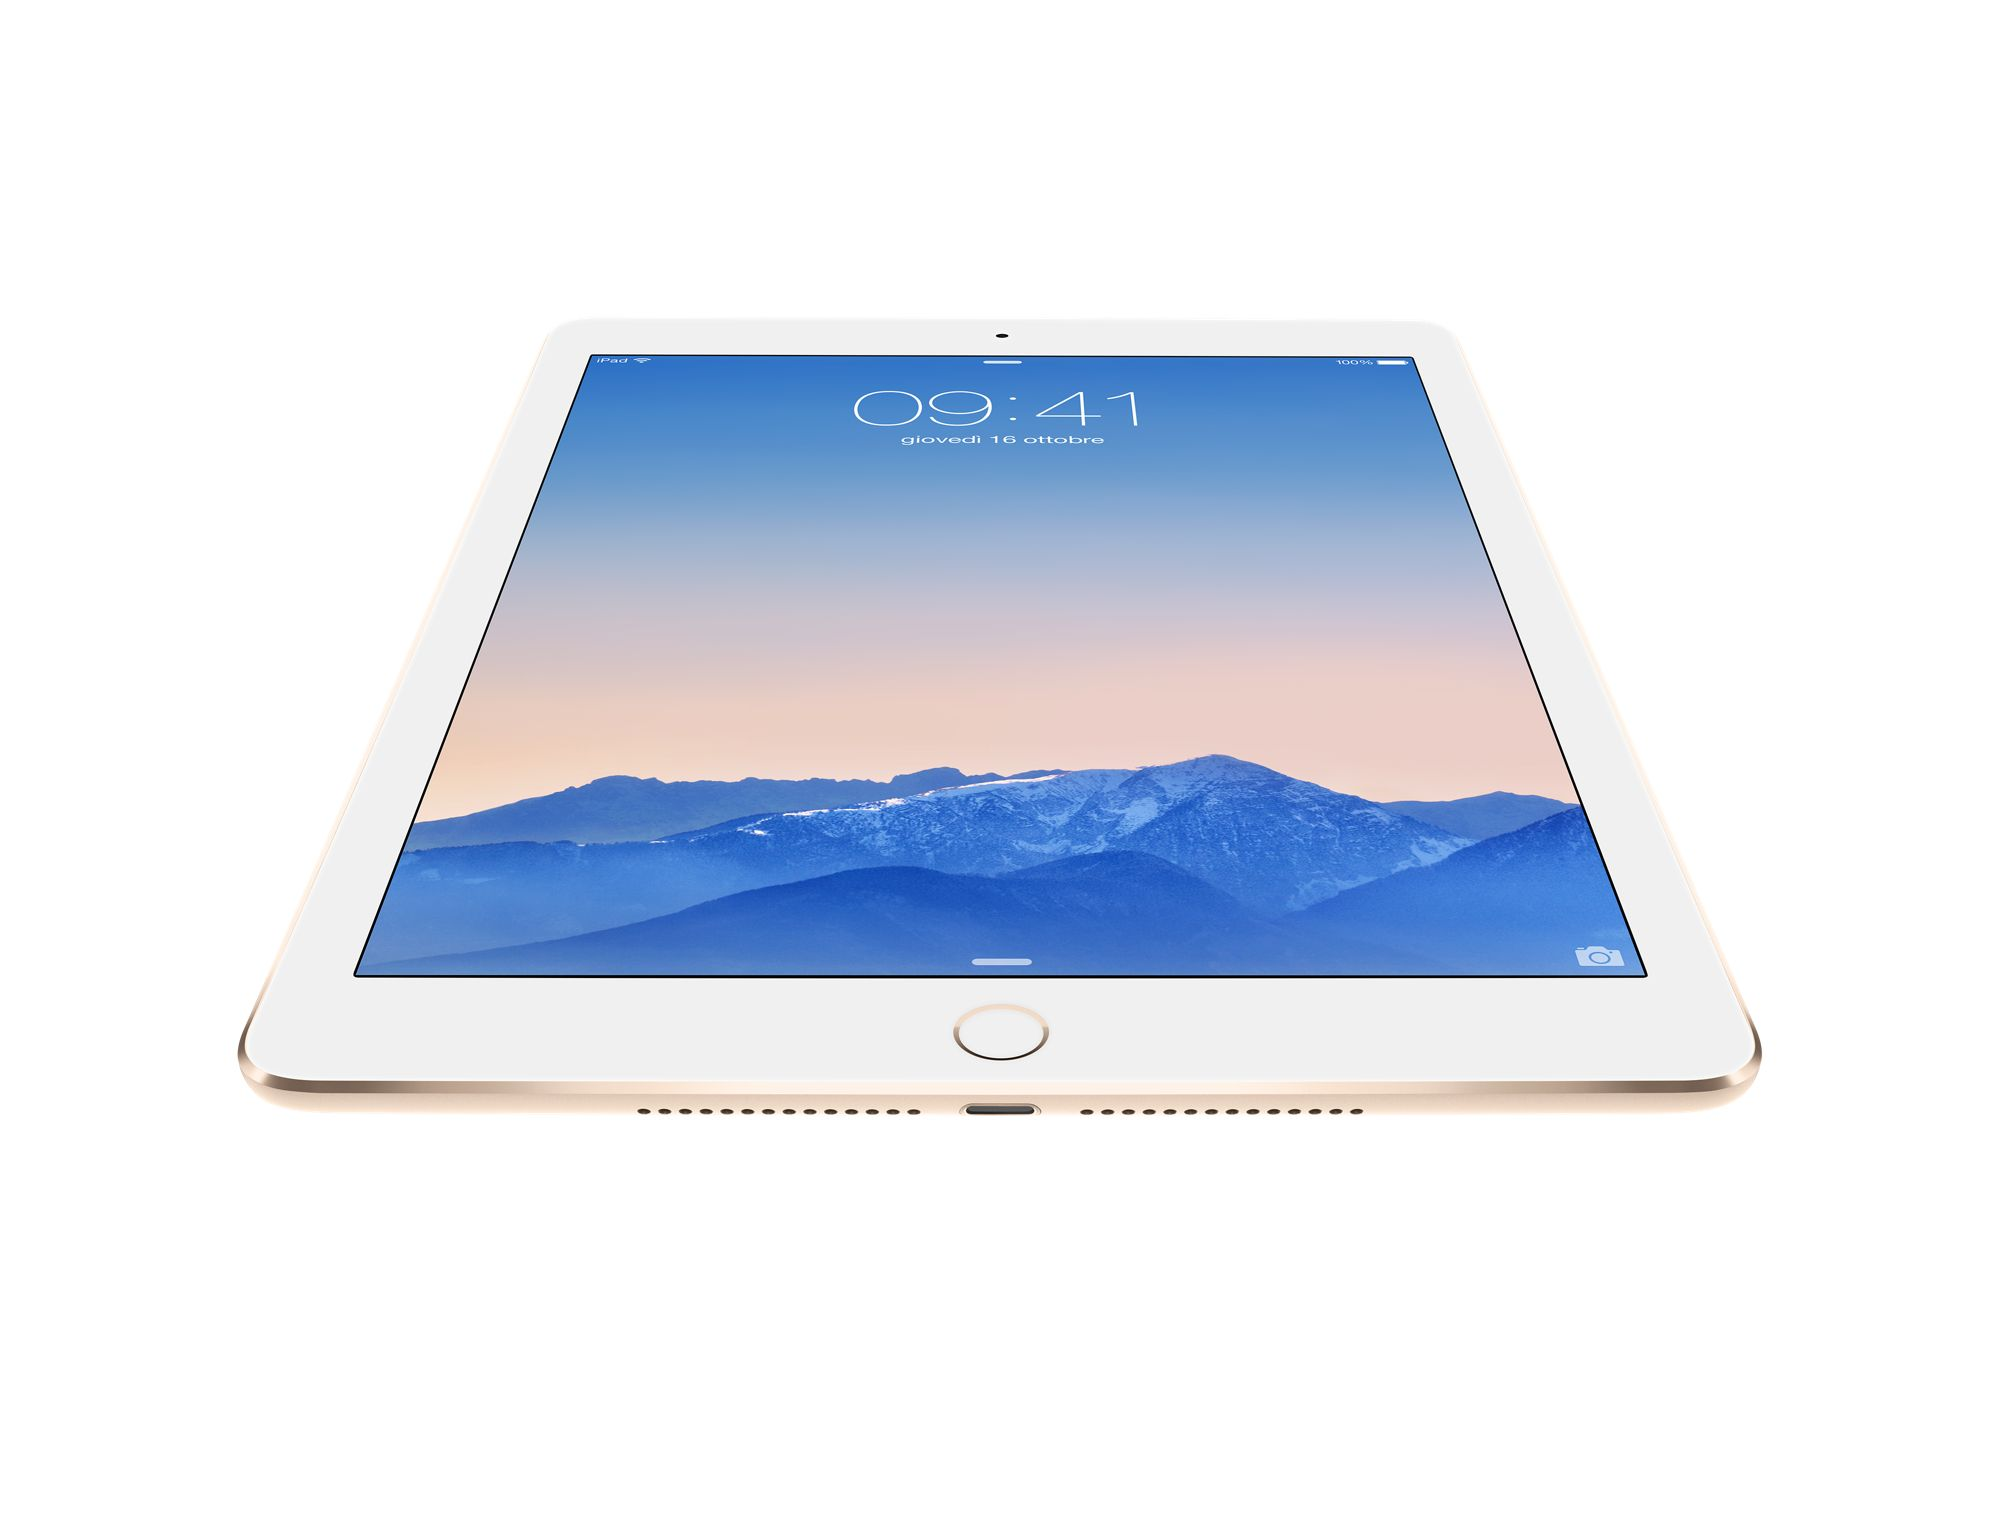 iPad Air 2 tasto home fingerprint